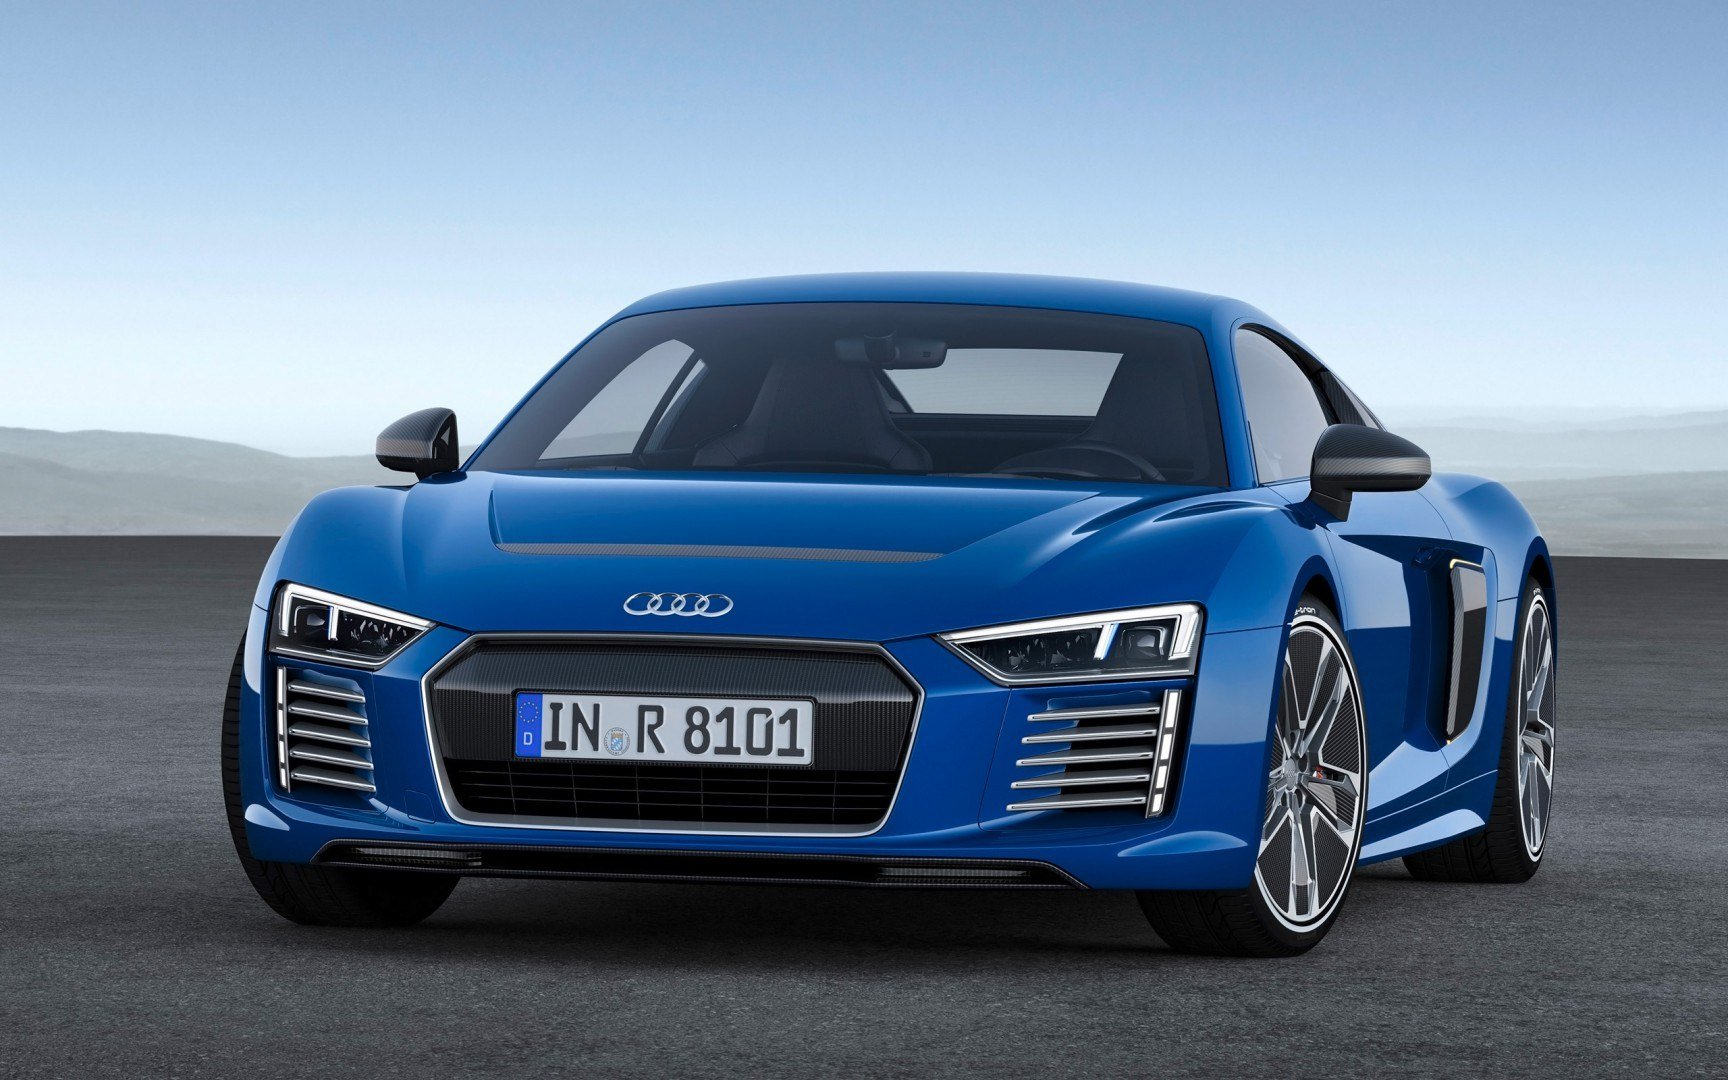 Latest 2016 Audi R8 E Tron Car Hd Wallpaper » Fullhdwpp Full Hd Free Download